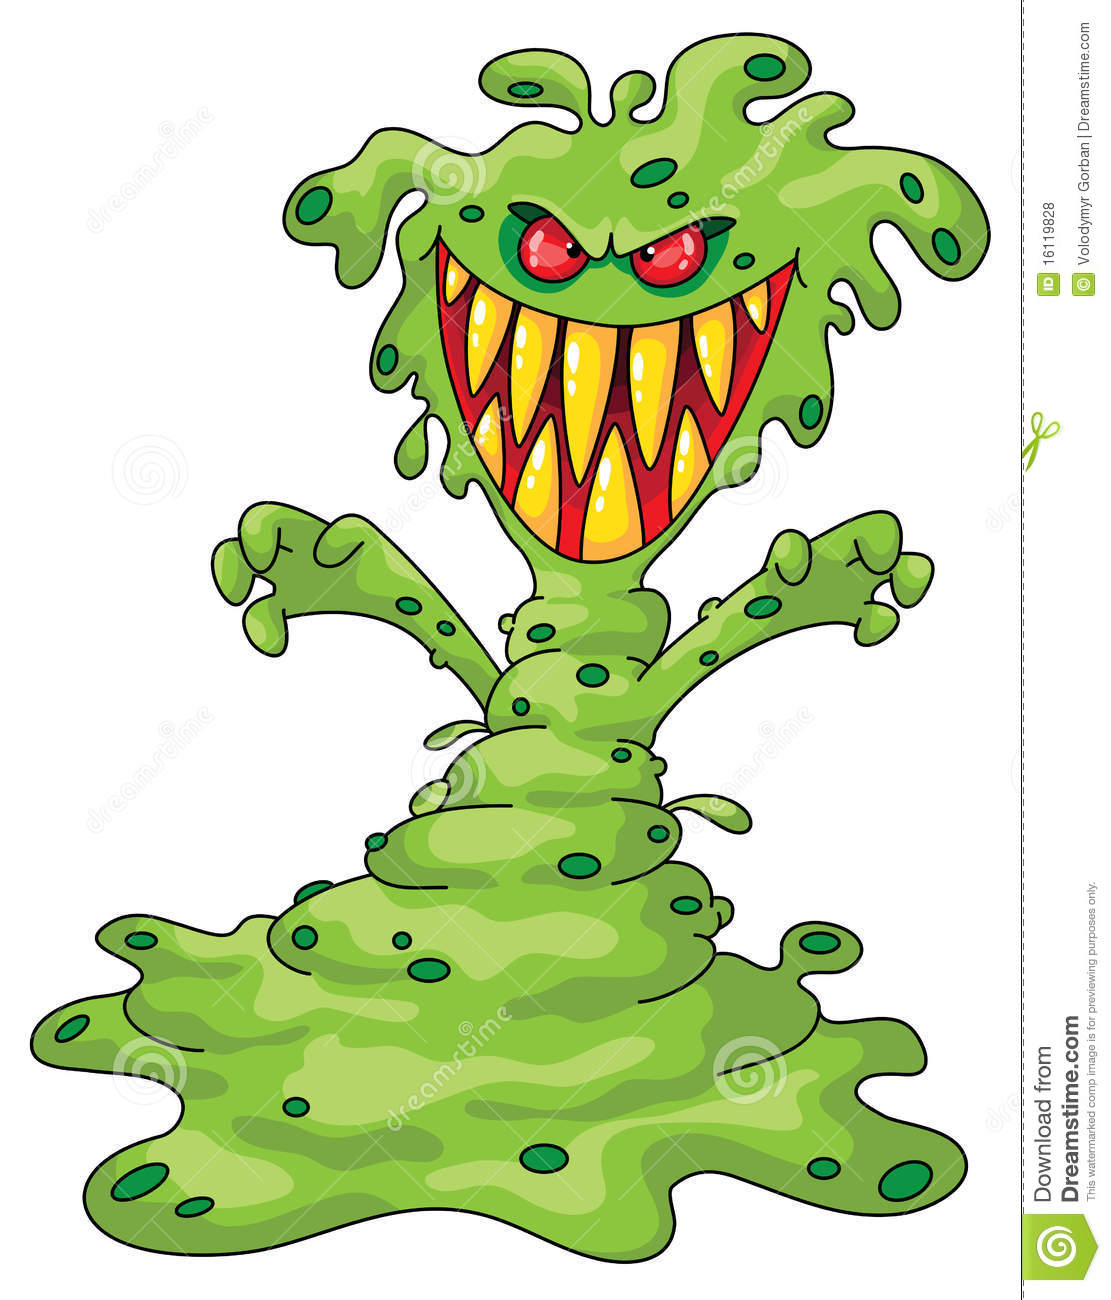 Scary Monster Royalty Free Stock Photos Image 16119828